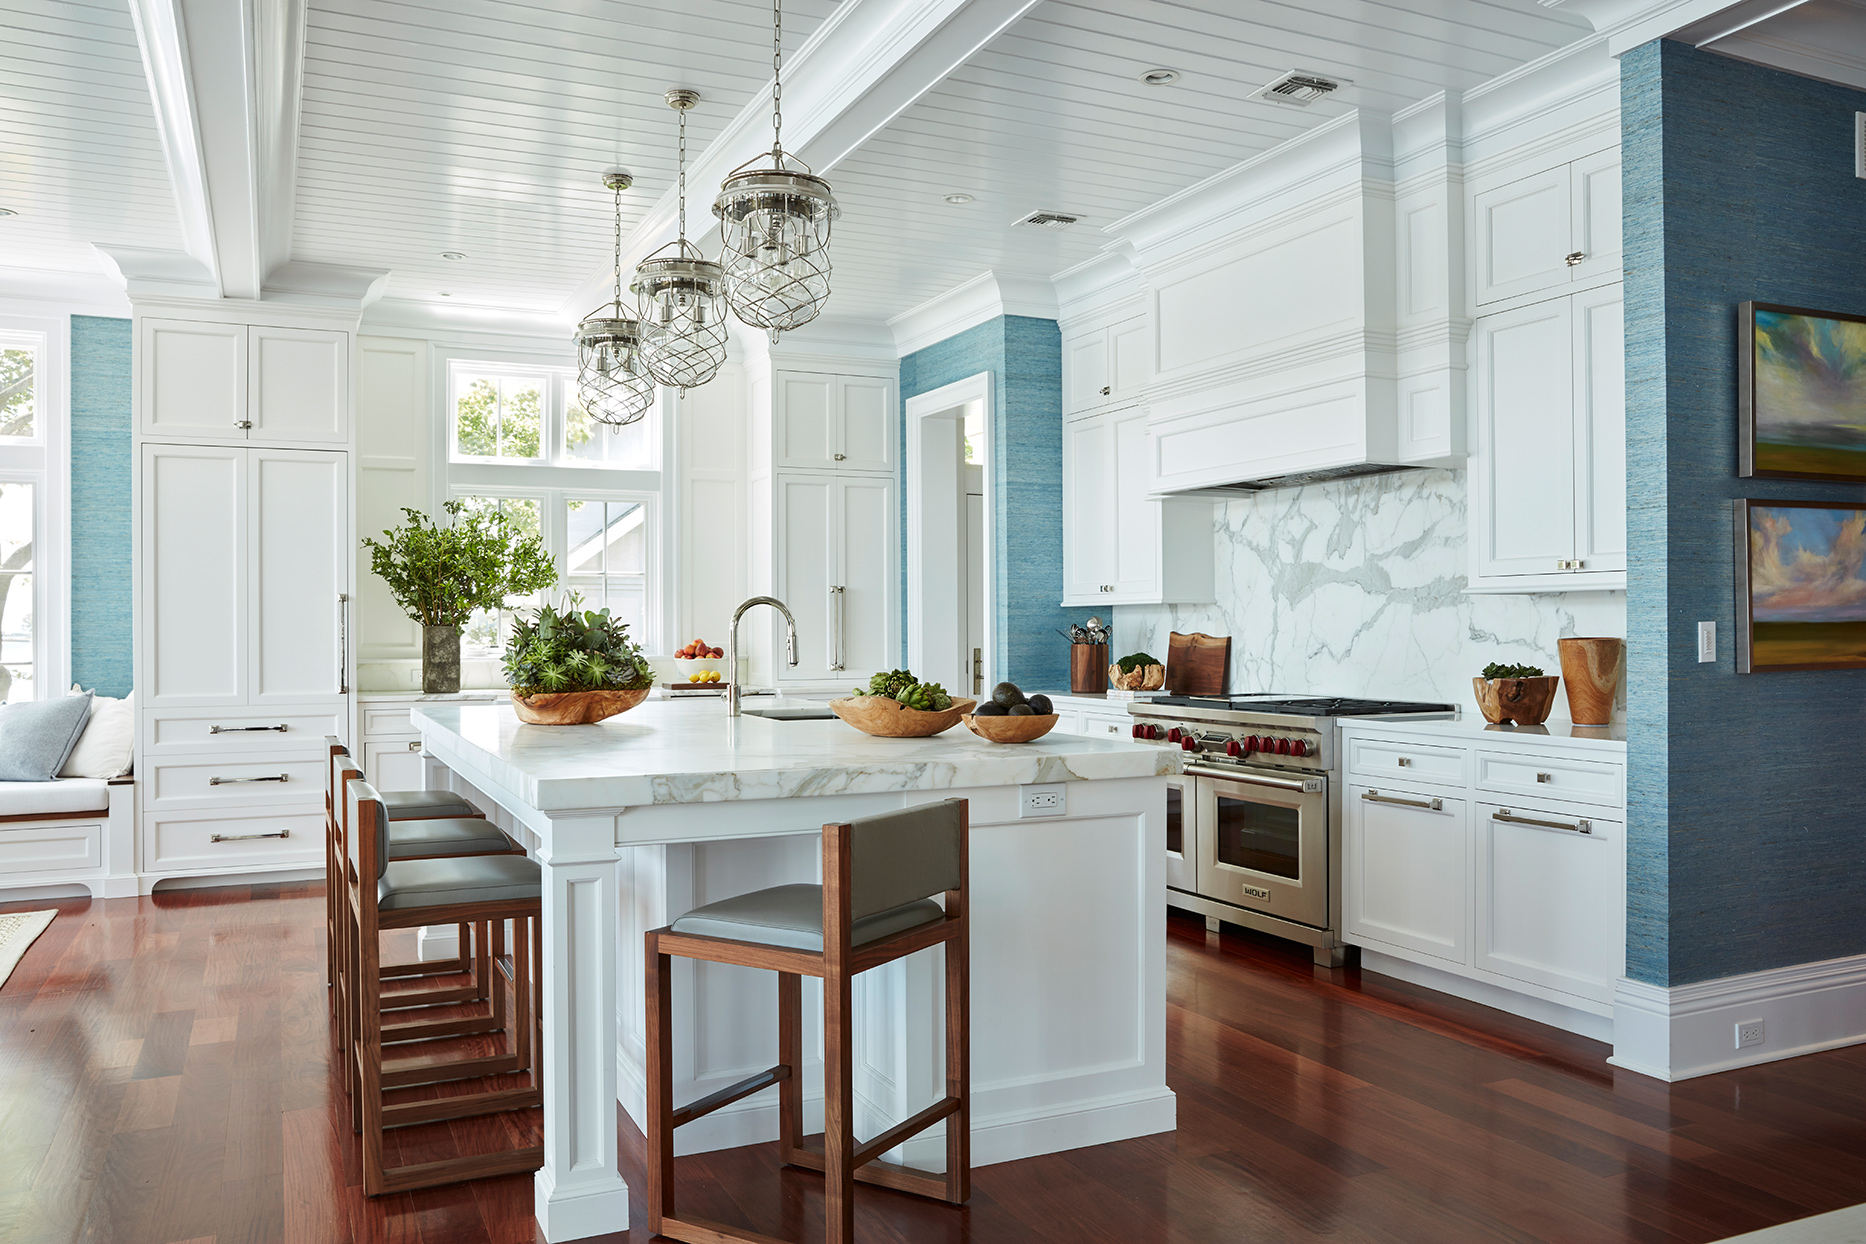 white marble backsplash in blue kitchen